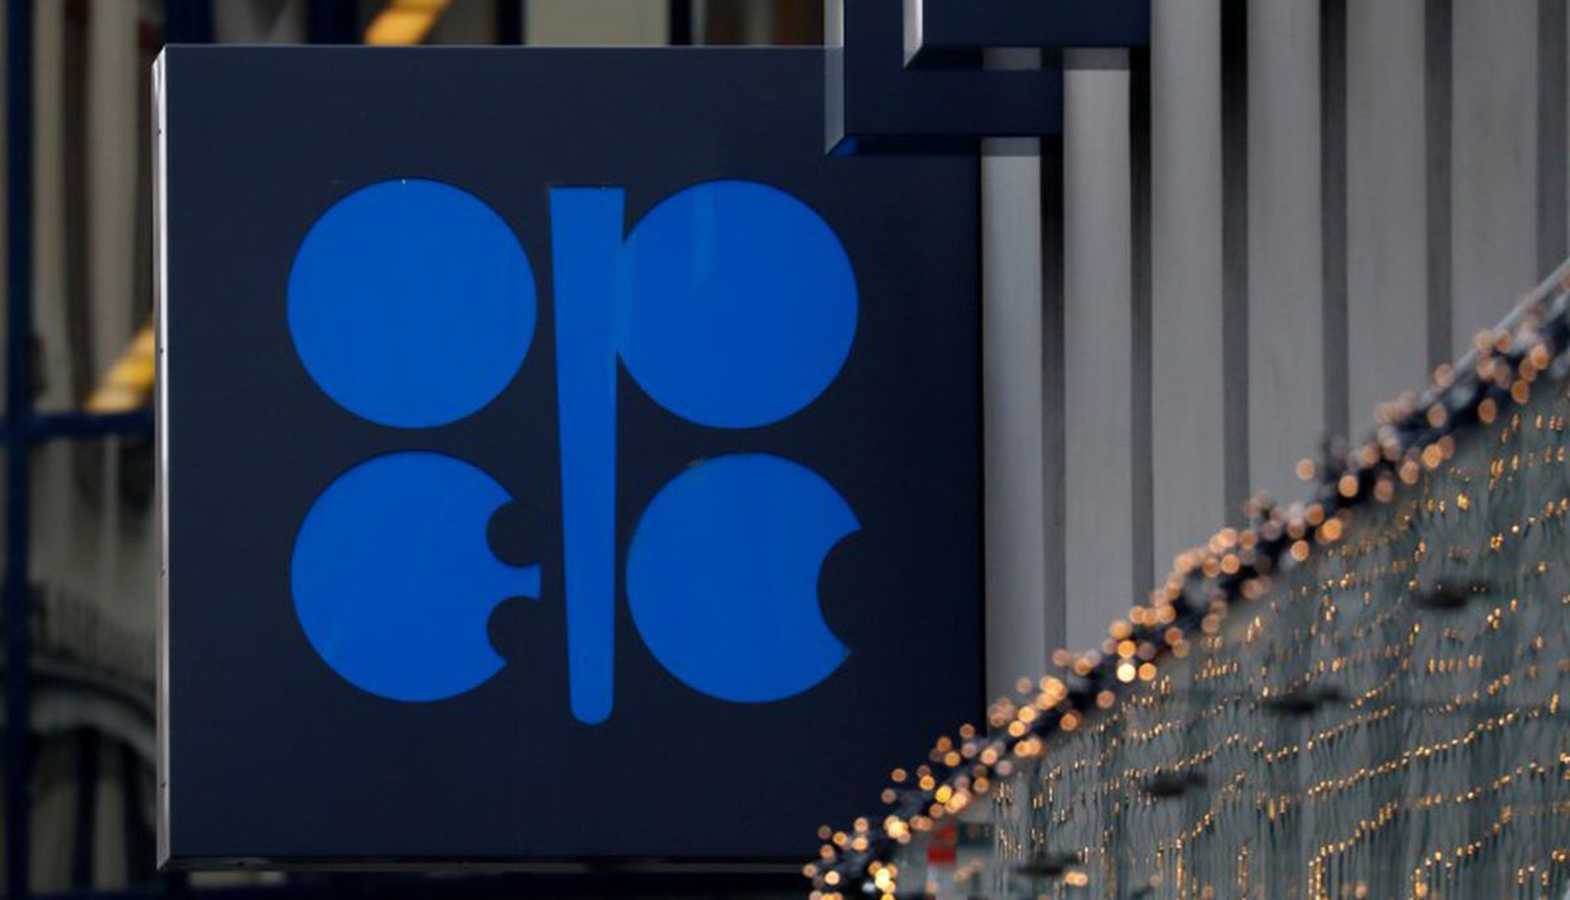 OPEC Has Lowered Its Forecast For Global Oil Demand For 2020-2021